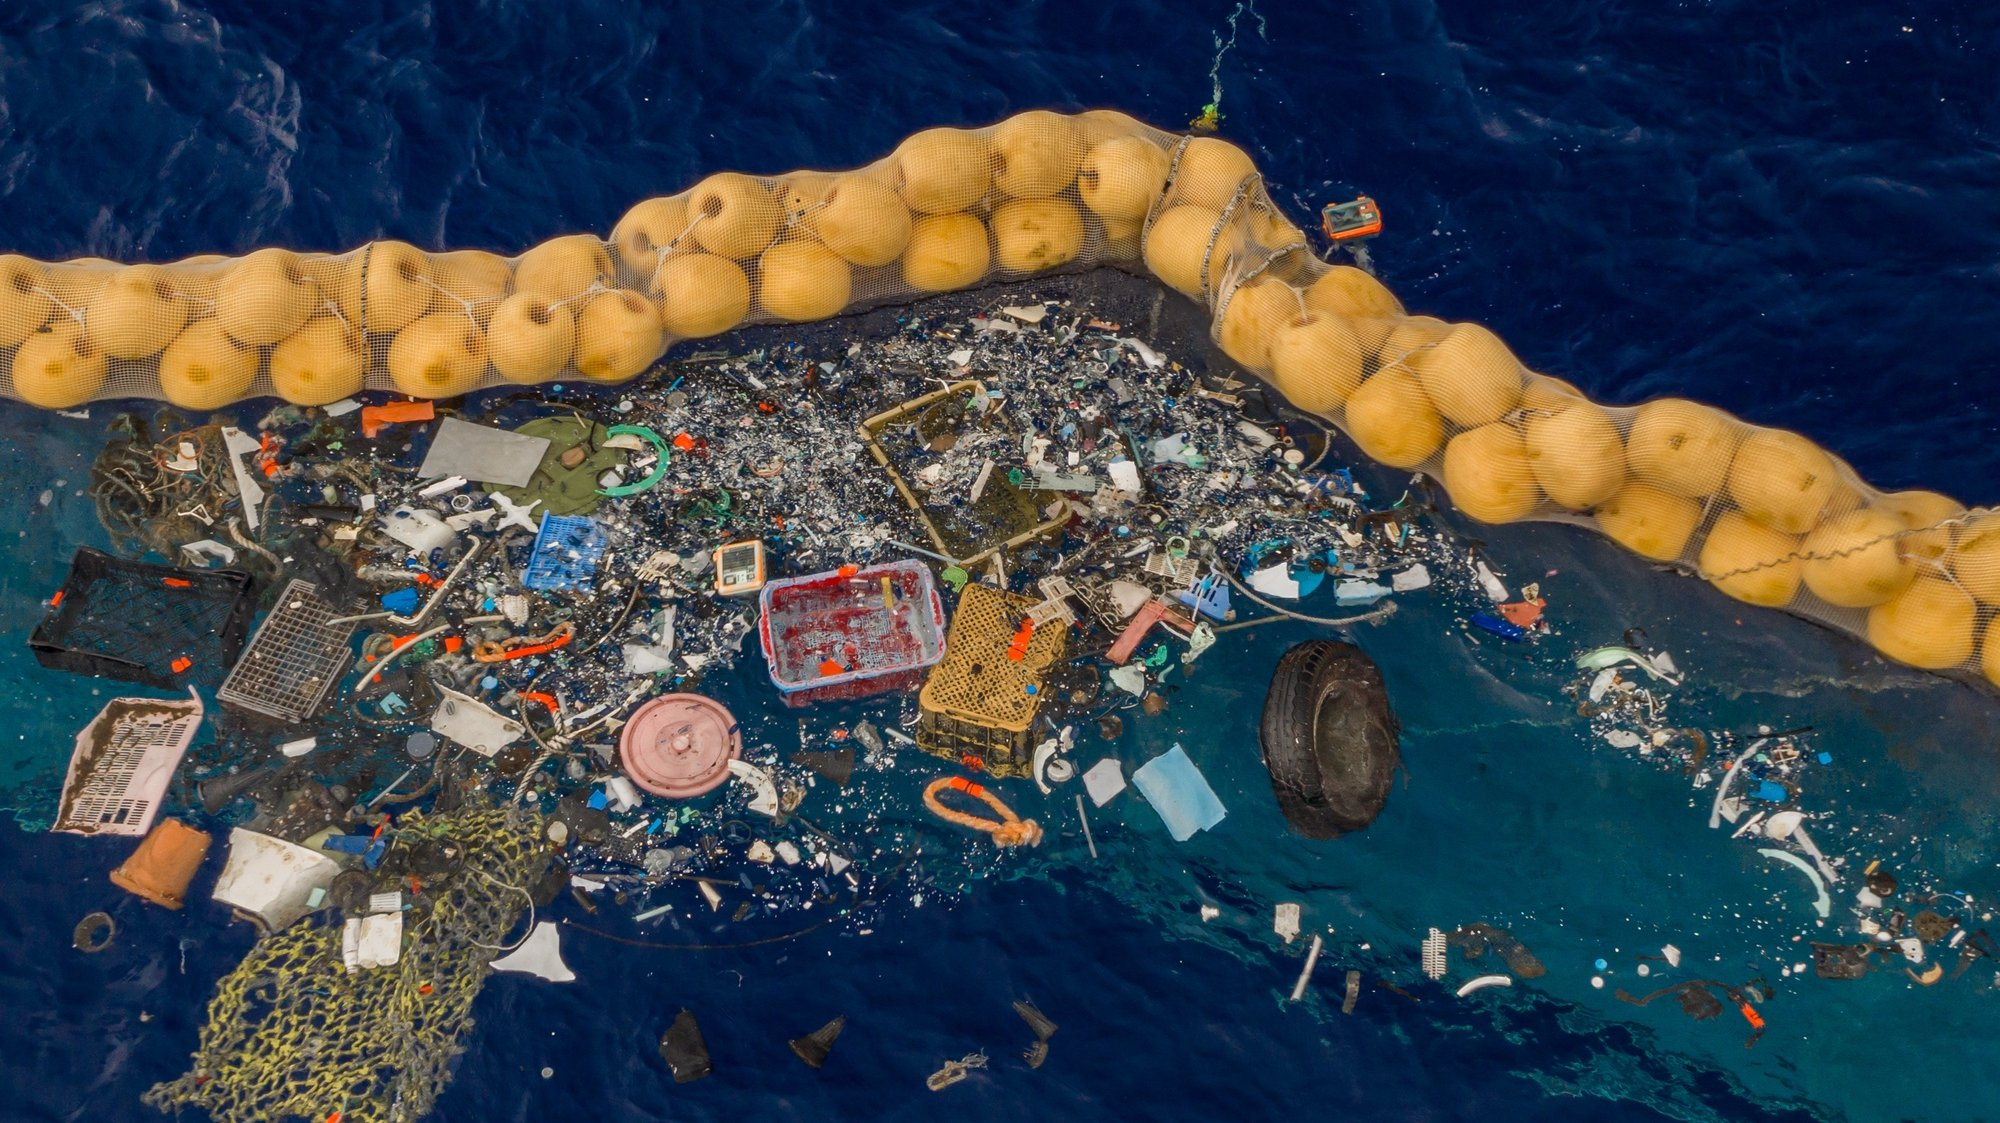 epa07892087 A handout photo made available by The Ocean Cleanup shows the company's ocean cleanup prototype System 001/B capturing plastic debris in the Great Pacific Garbage Patch, in the Pacific Ocean, 30 September 2019 (issued 03 October 2019). The self-contained system uses natural currents of the sea to passively collect plastic debris in an effort to reduce waste in the ocean. According to the Ocean Cleanup, the system is also able to filter microplastics as small as 1mm.  EPA/THE OCEAN CLEANUP HANDOUT  HANDOUT EDITORIAL USE ONLY/NO SALES